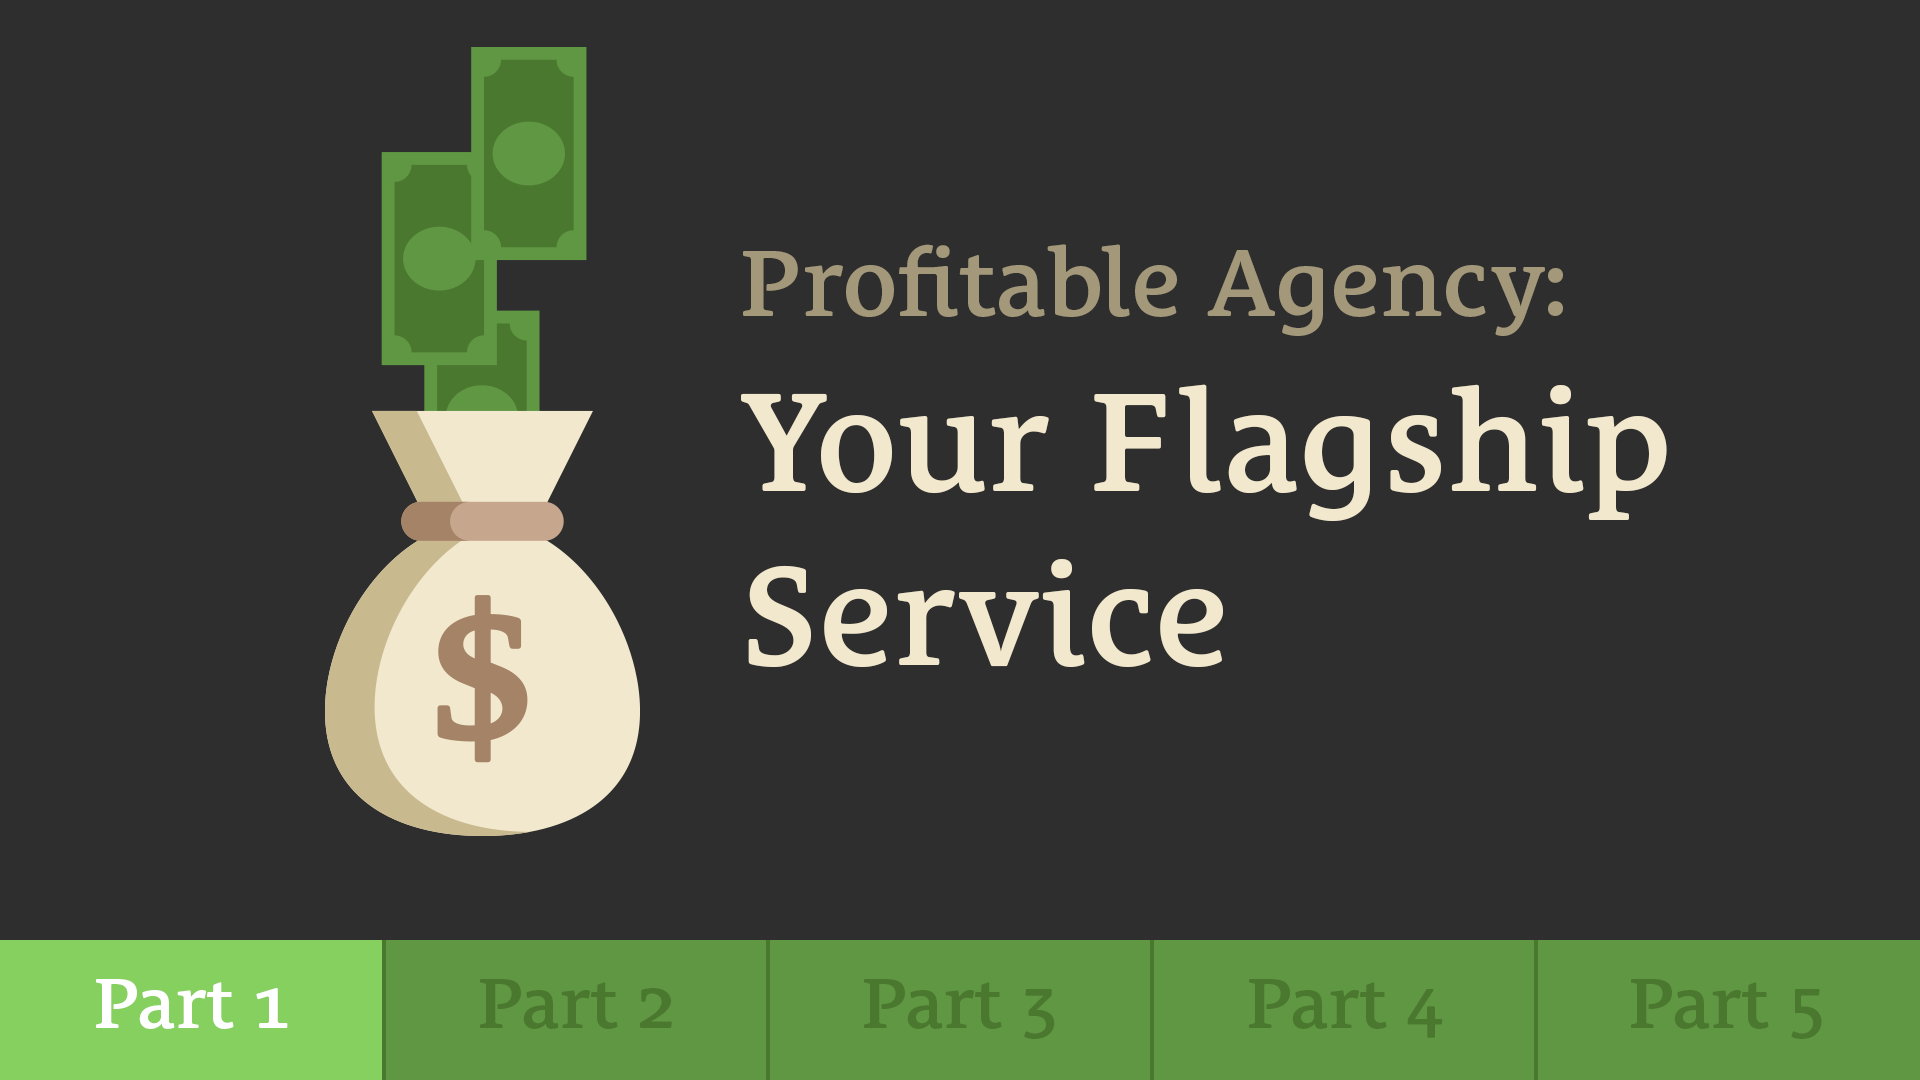 496: Build a Profitable Agency - Part 1: Your Flagship Service